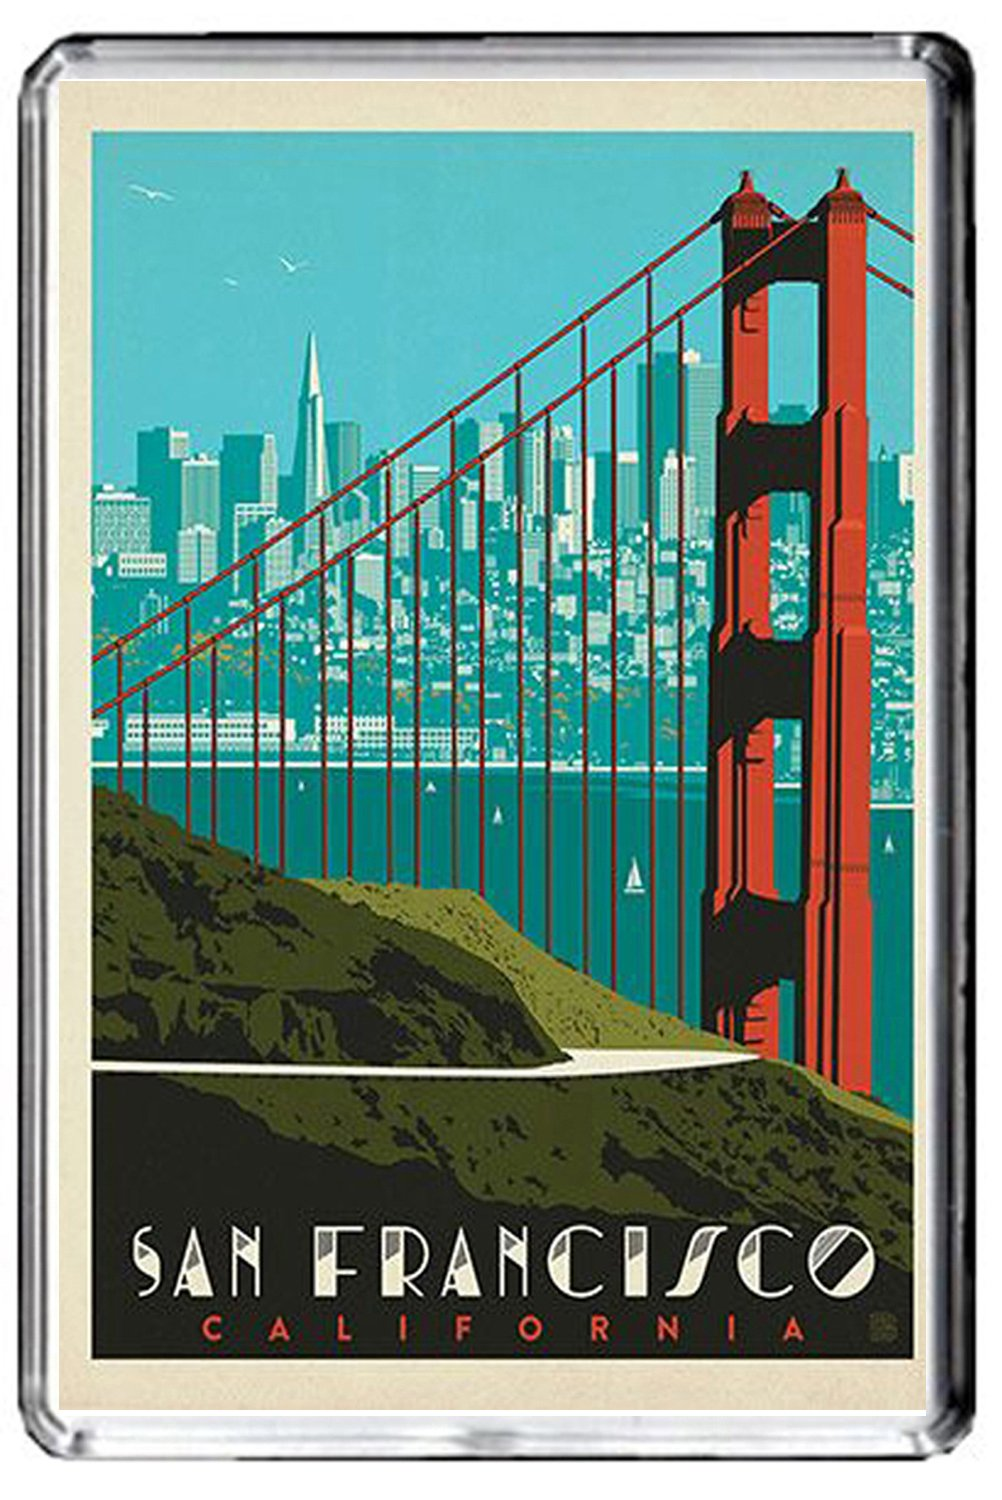 F098 SAN Francisco Fridge Magnet USA Vintage Travel Photo Refrigerator Magnet GIFTSCITY